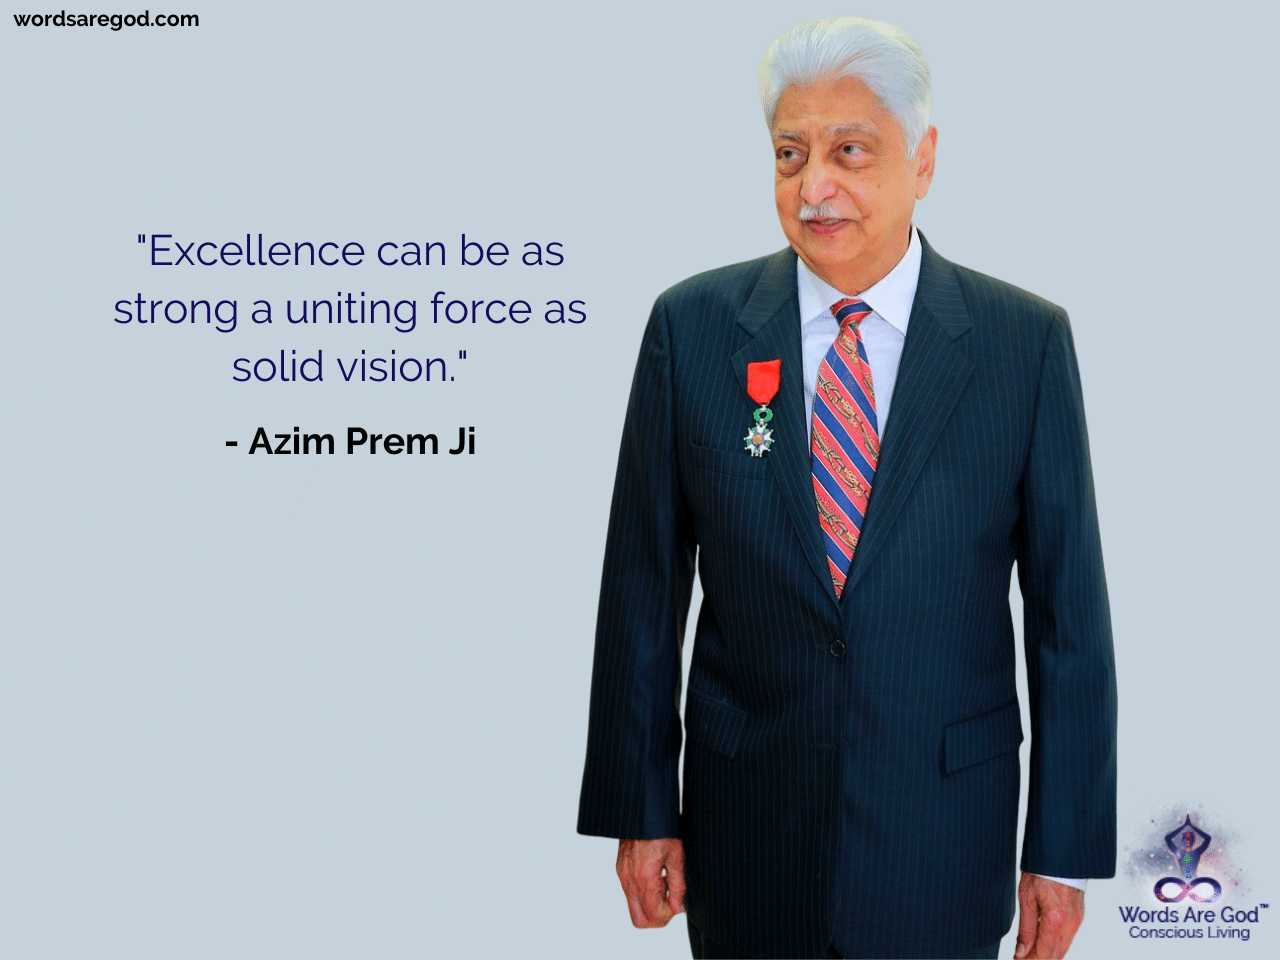 Azim Prem Ji Inspirational Quote